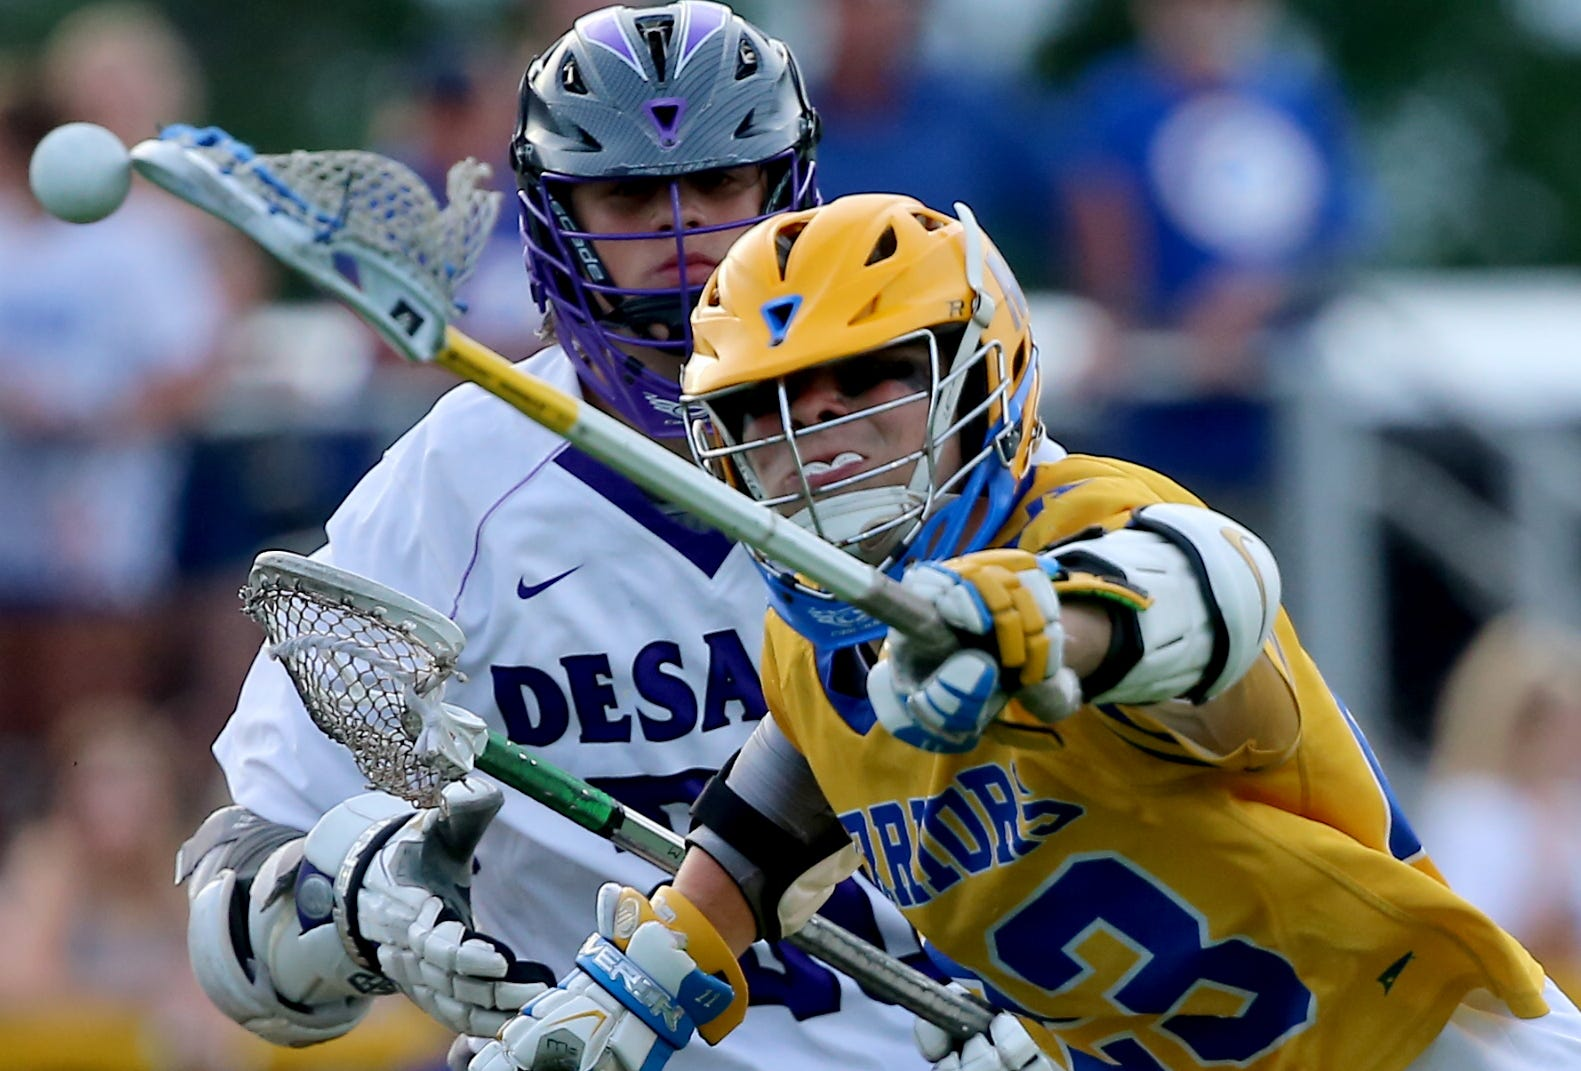 PHOTOS: Mariemont boys, girls lacrosse play St. Francis DeSales in DII state semis